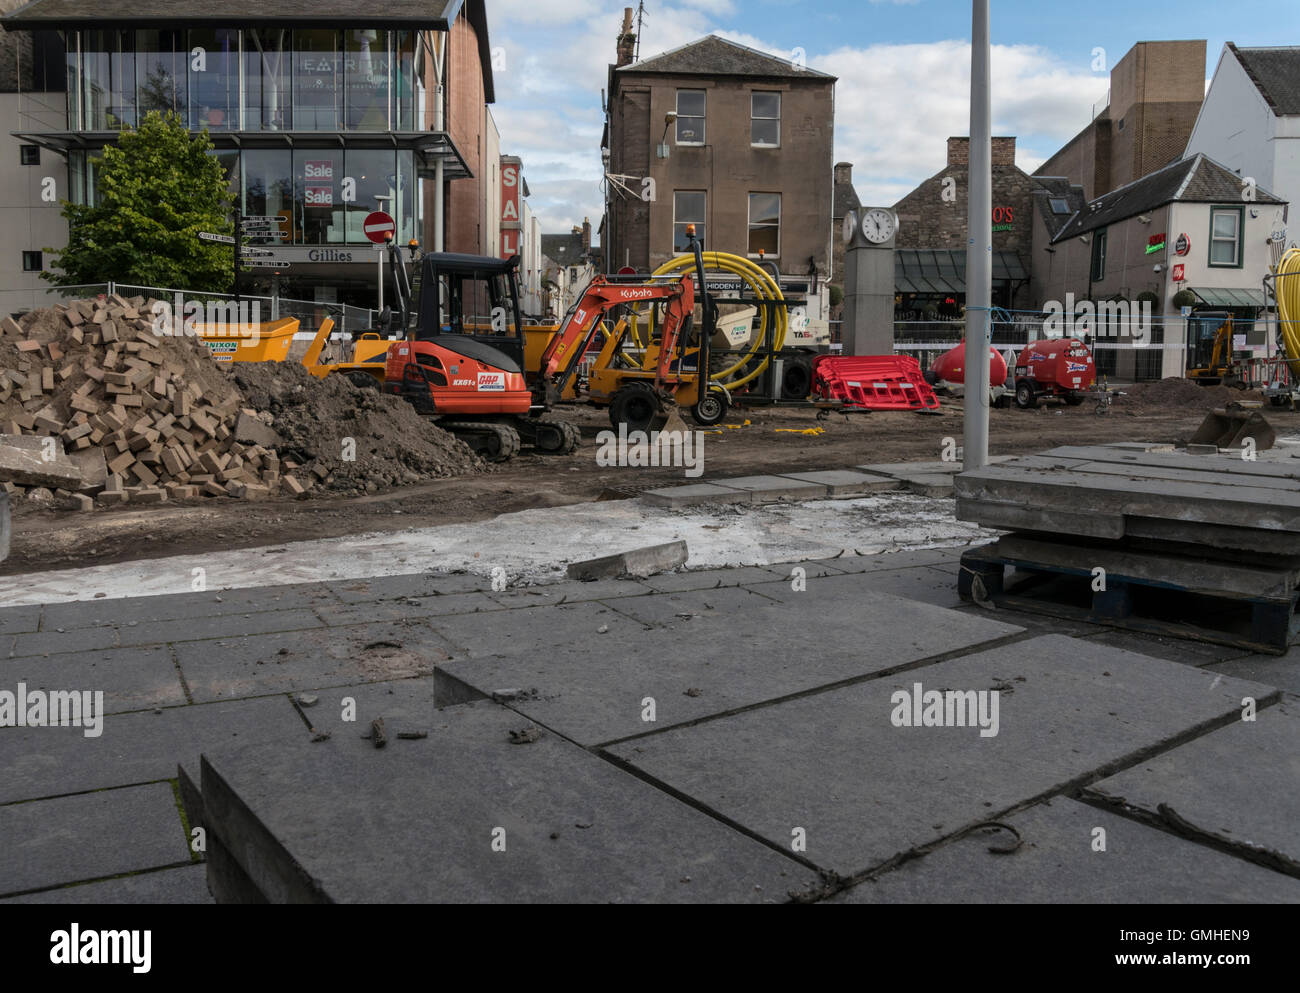 Public realm improvement works at Horsecross,Perth,Perthshire,Scotland,UK, - Stock Image